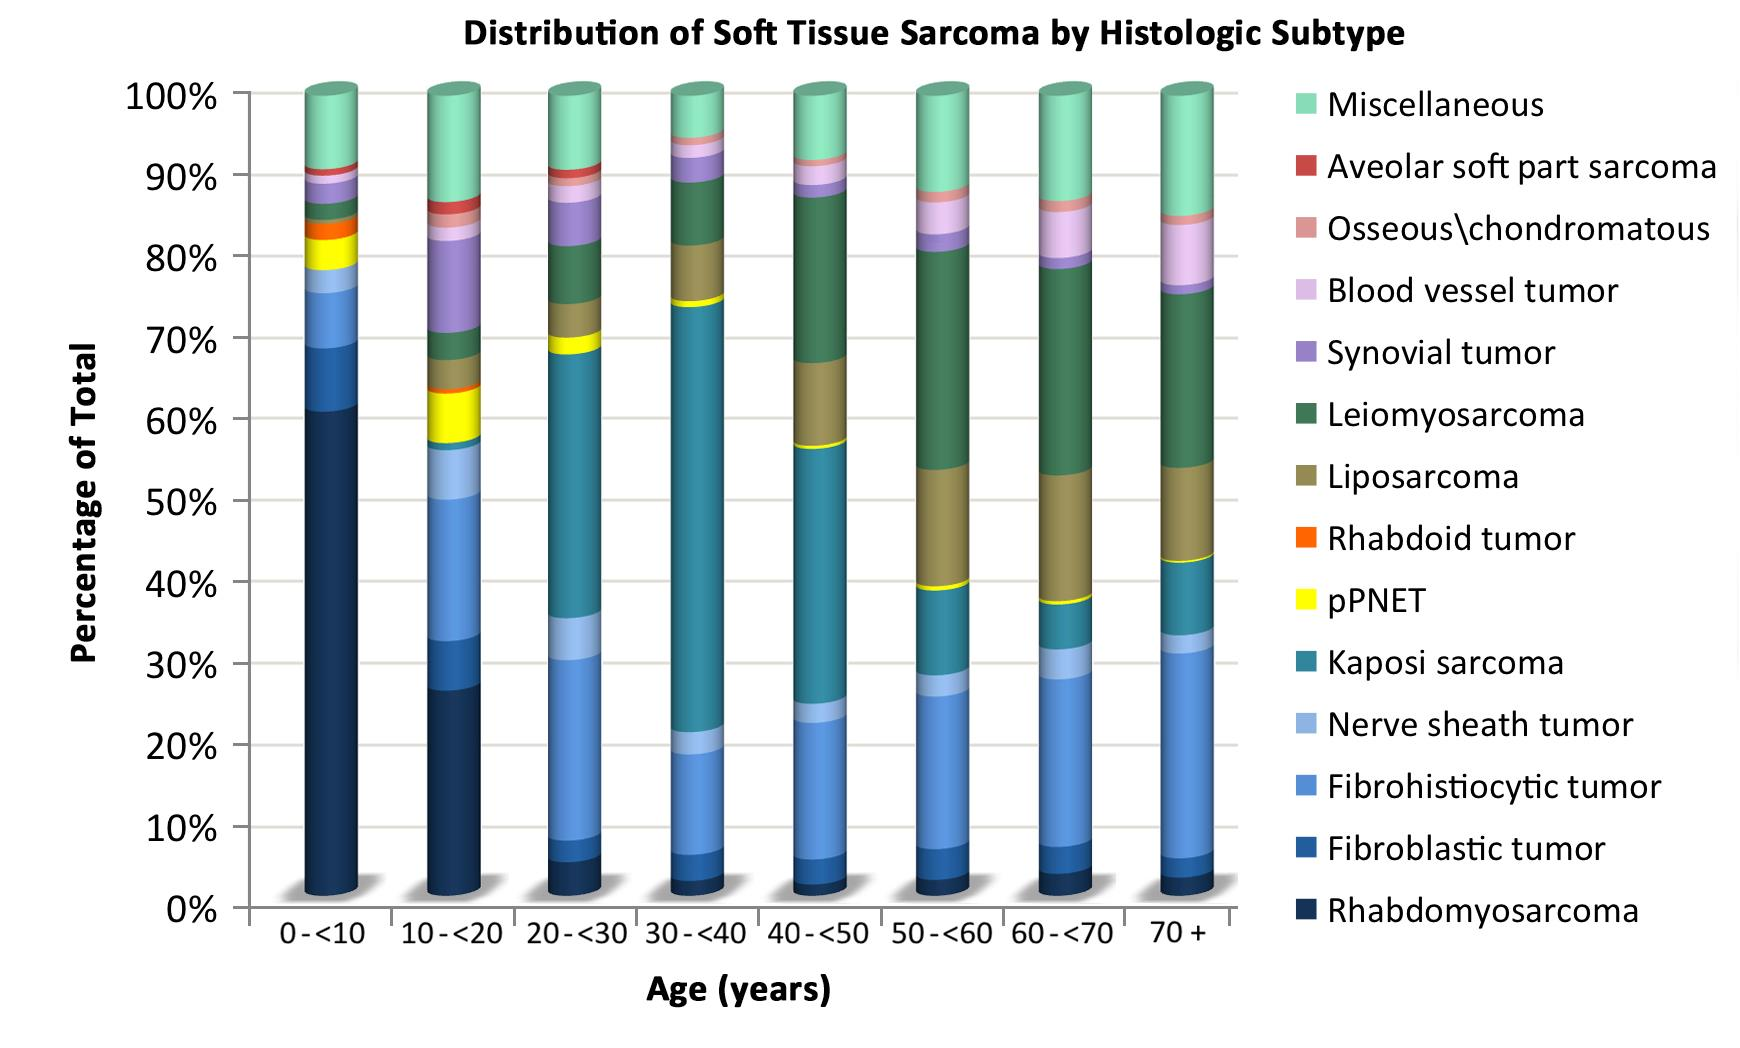 Chart showing the distribution of nonrhabdomyosarcomatous soft tissue sarcomas by age according to histologic subtype.